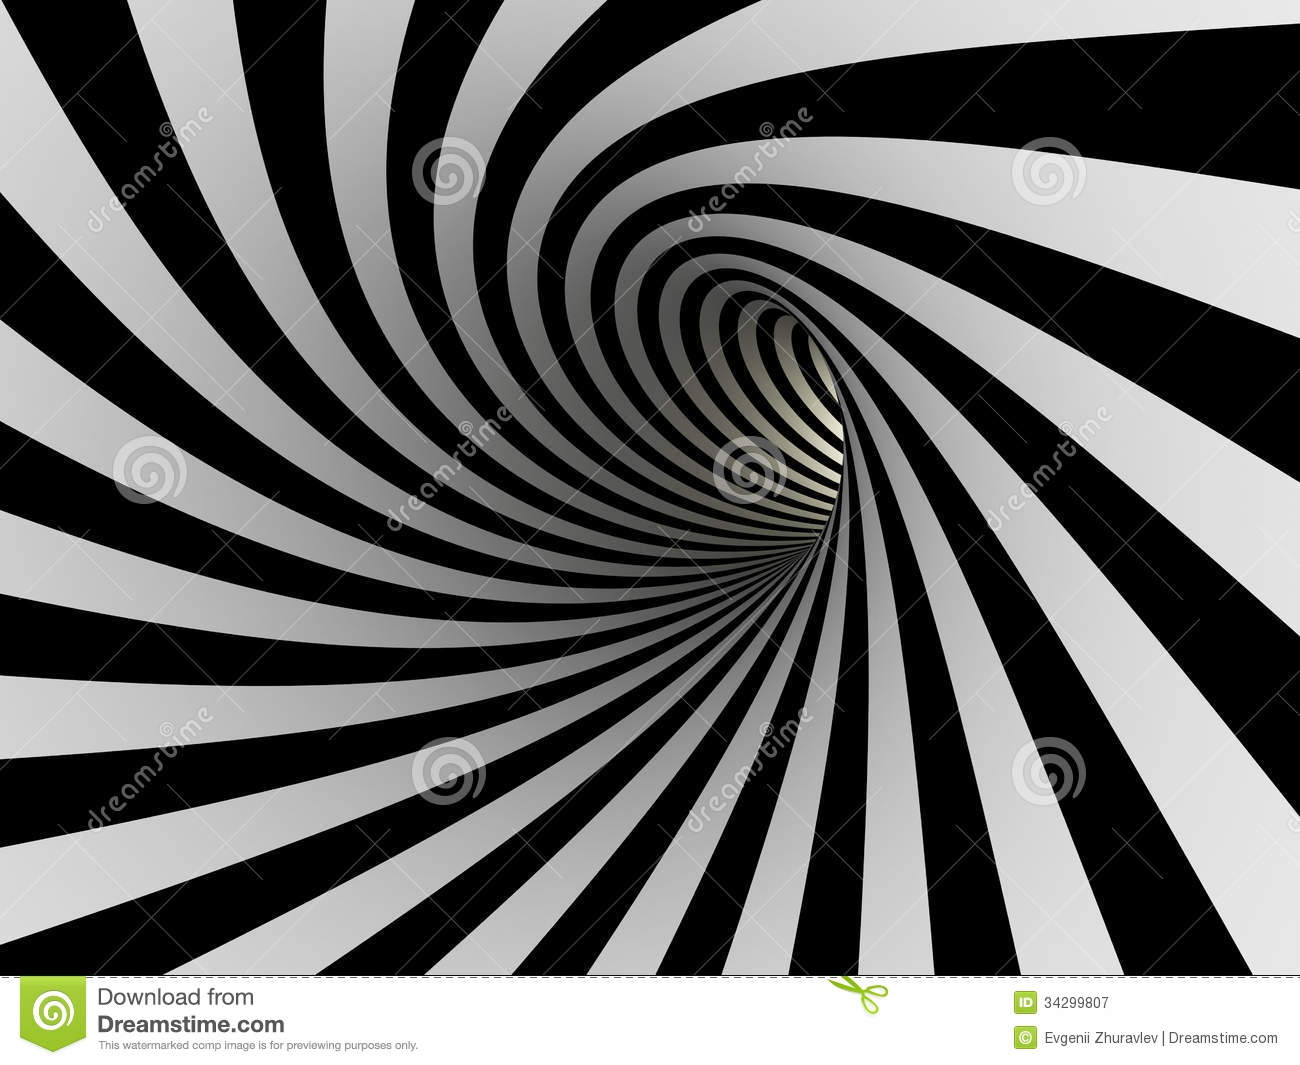 A Line Design : Tunnel of black and white lines stock illustration image